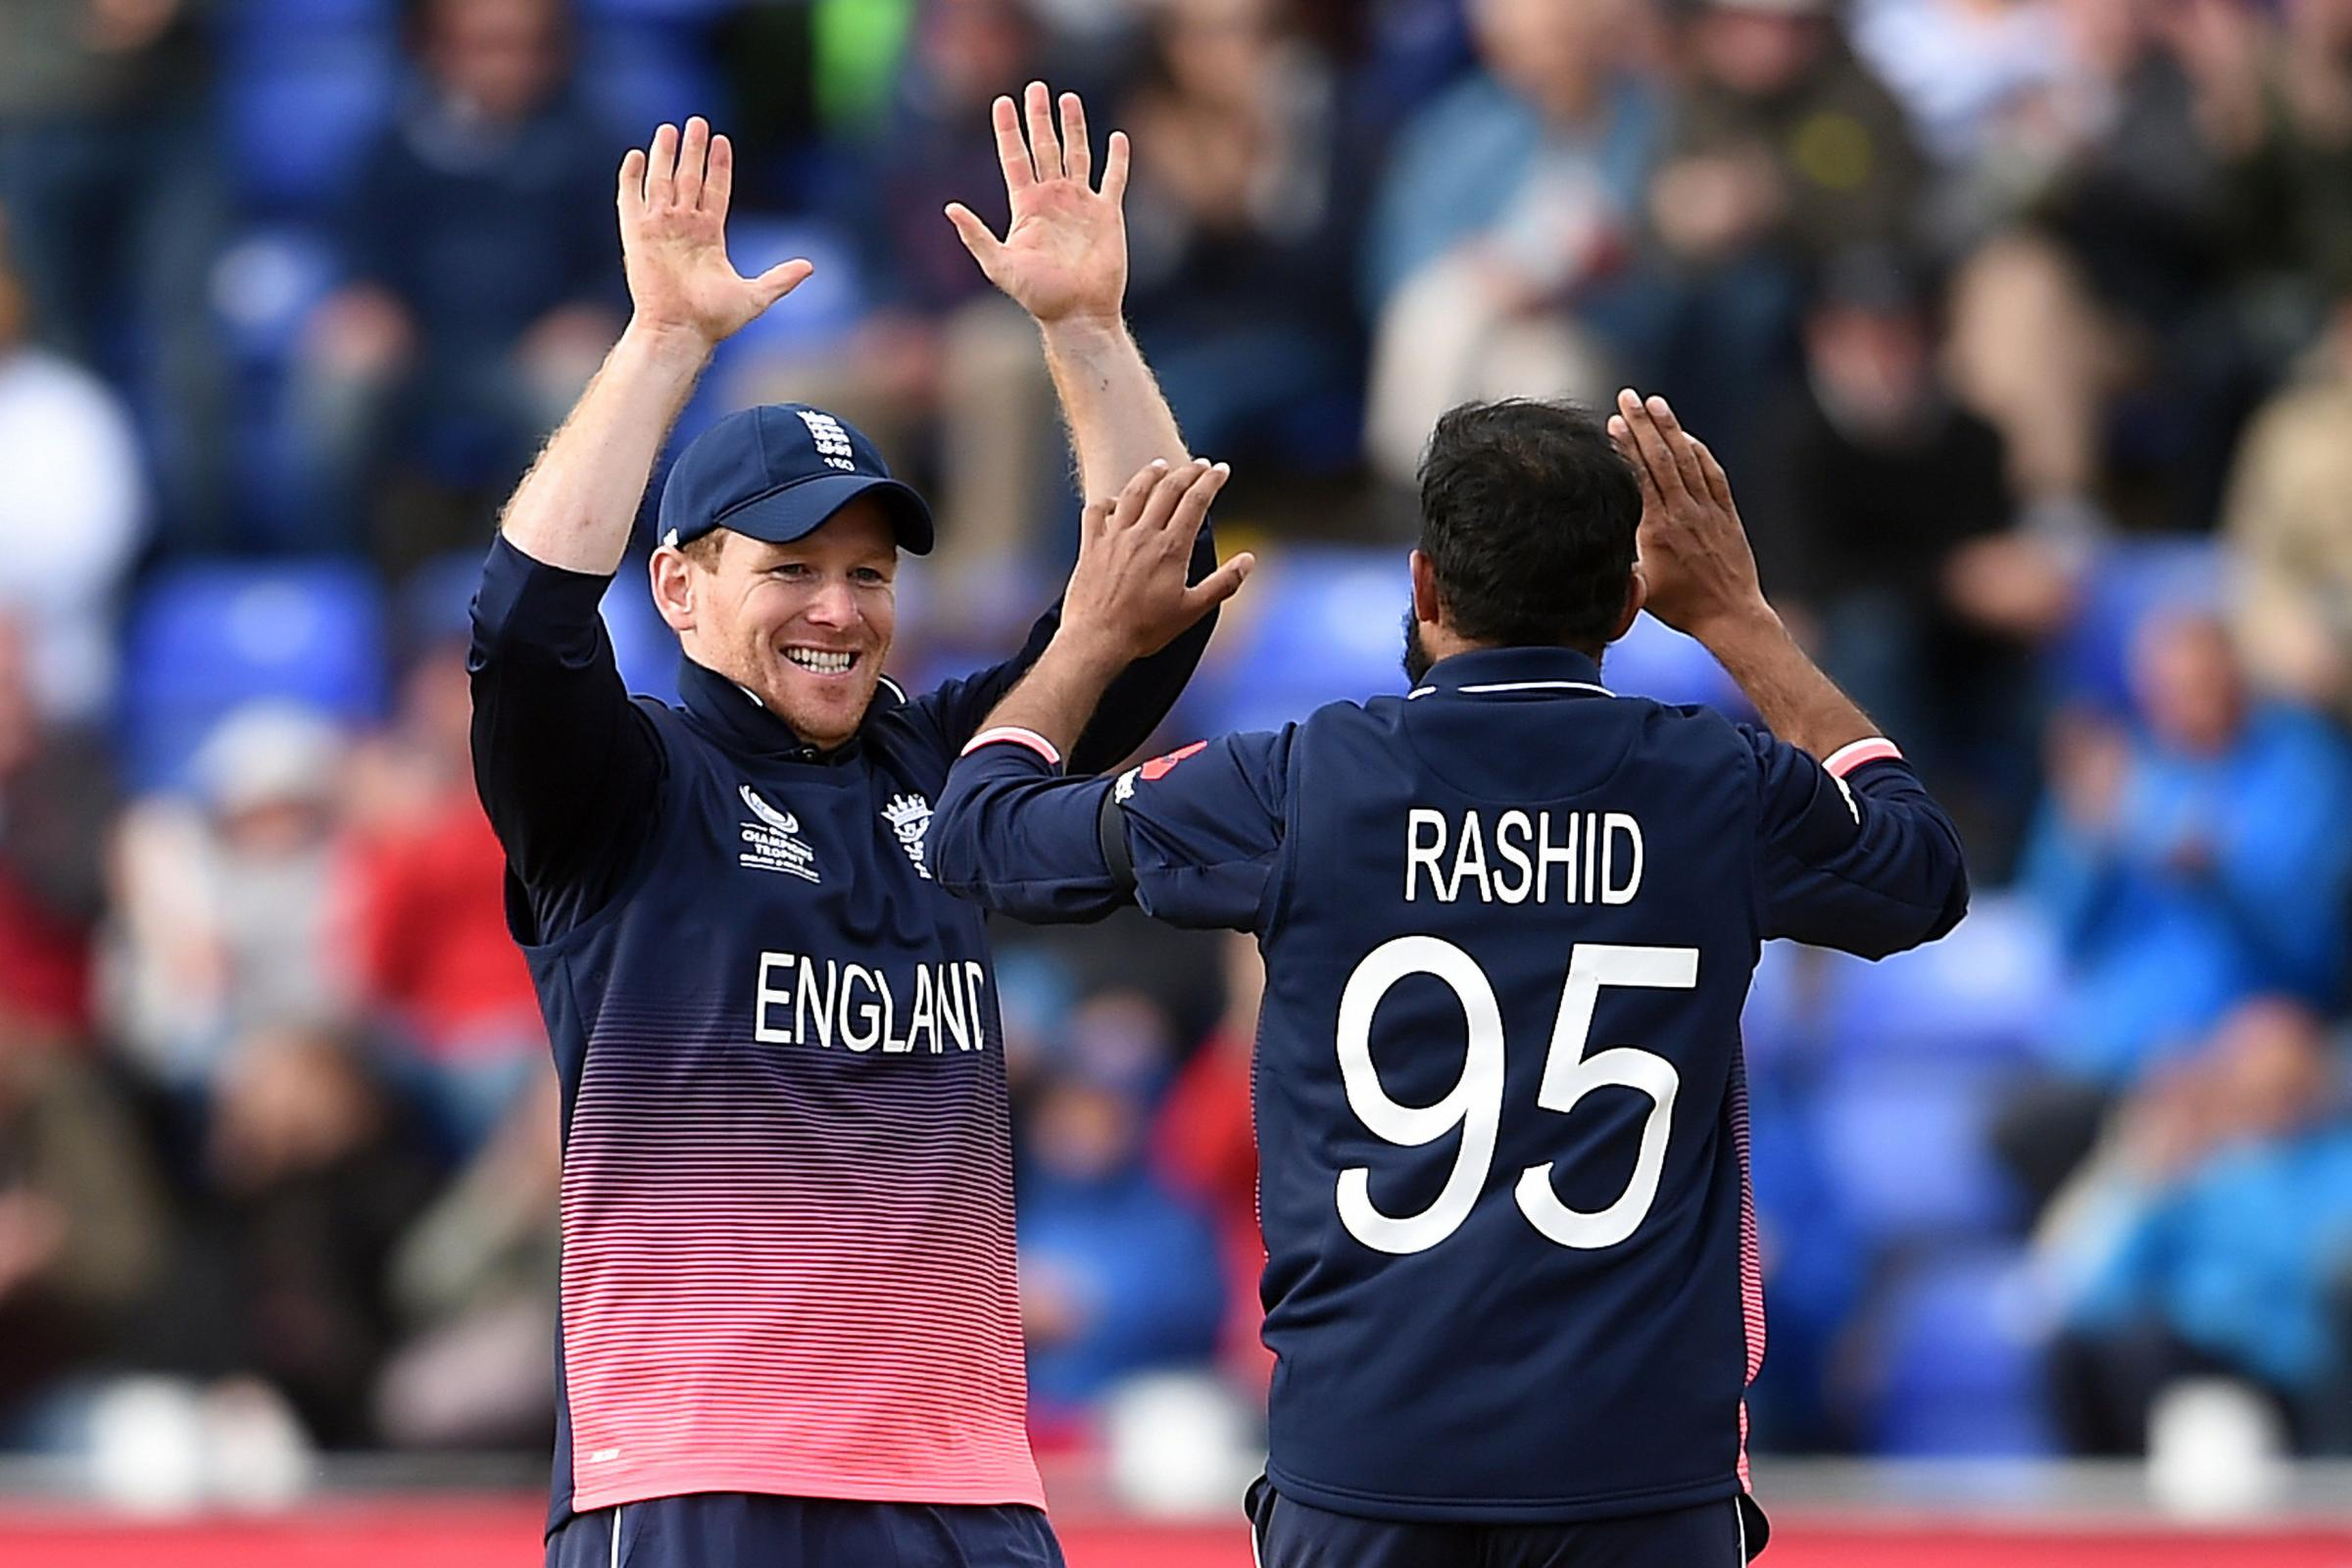 England's Eoin Morgan (left) celebrates with Adil Rashid